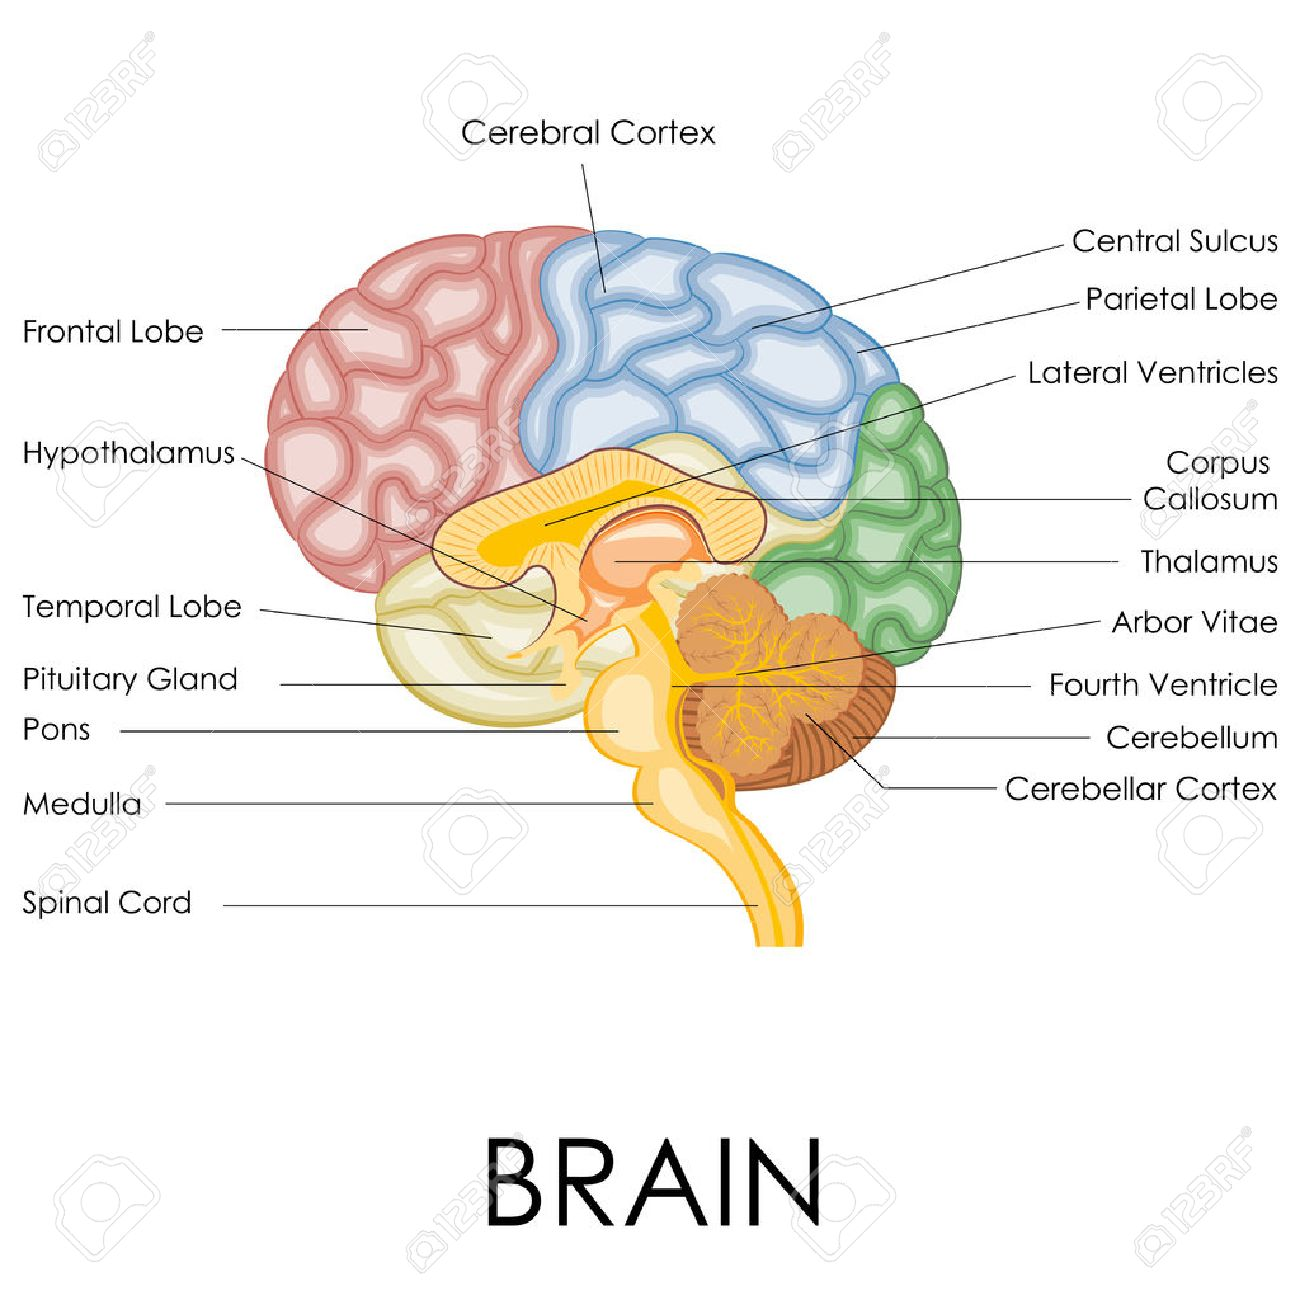 vector illustration of diagram of human brain anatomy royalty free  : brain anatomy diagram - findchart.co